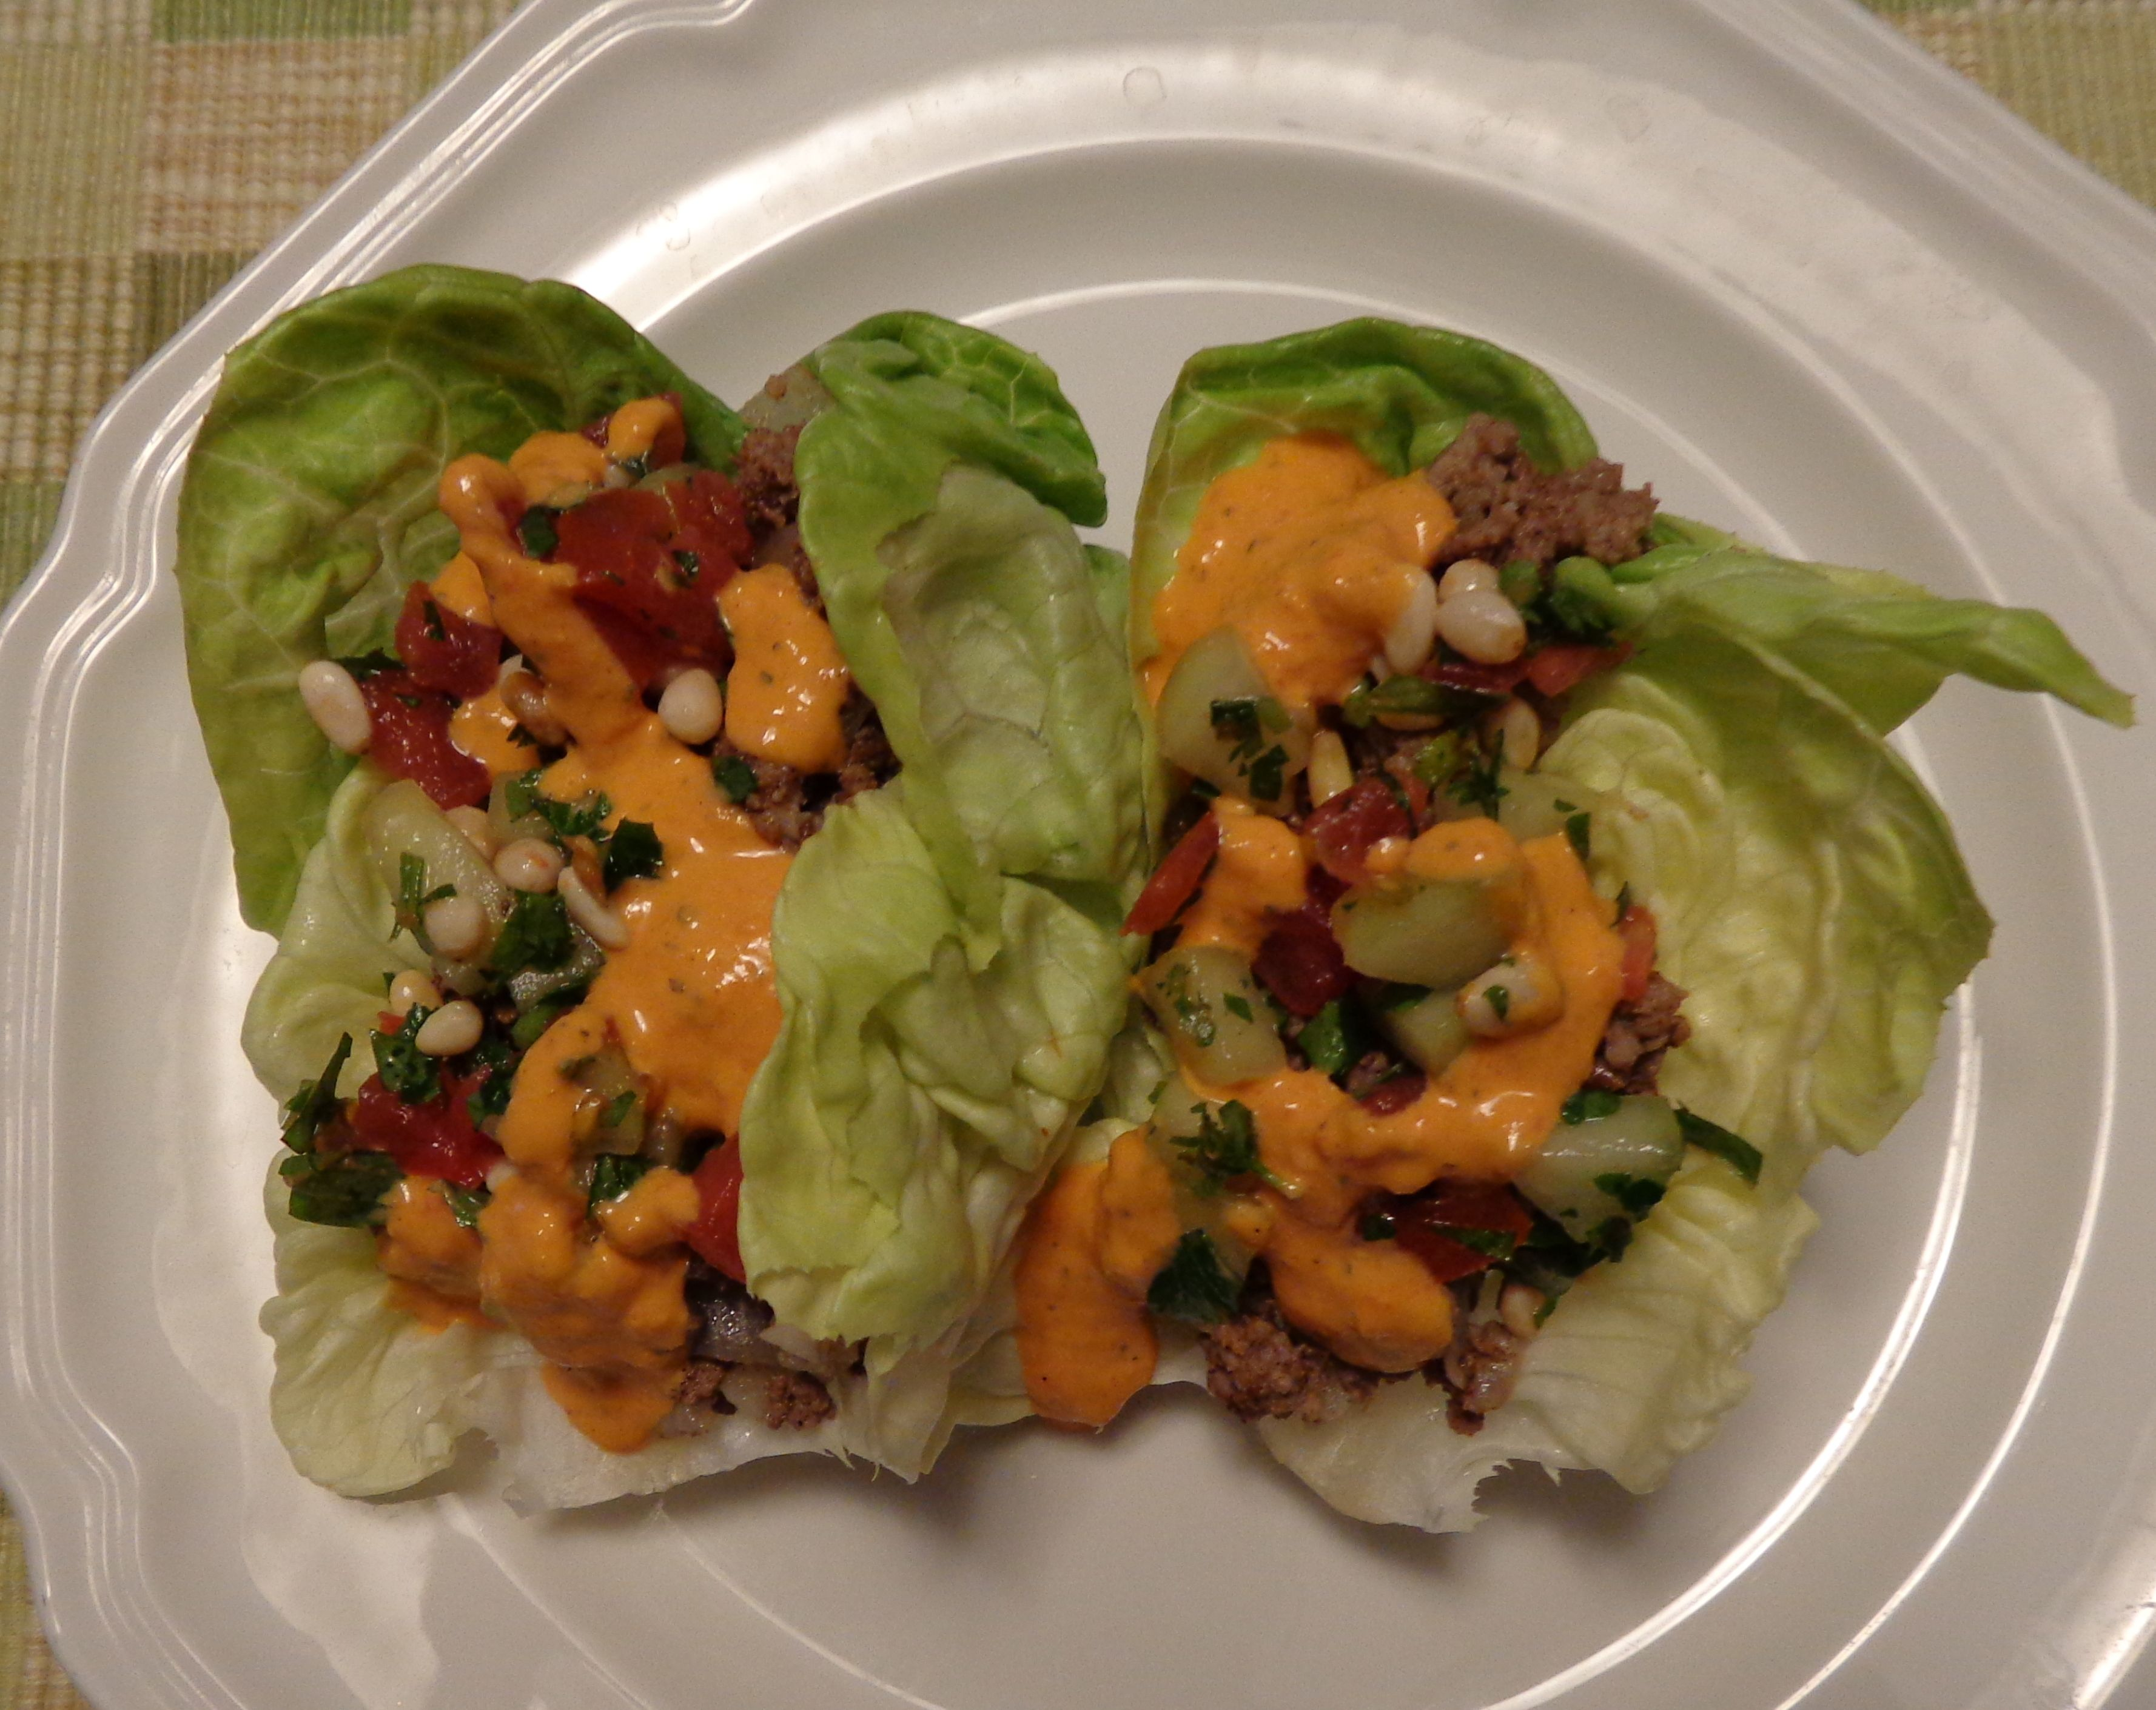 Lamb Lettuce Wraps with Cucumber Tomato Salad and Roasted Red Pepper Hummus Sauce